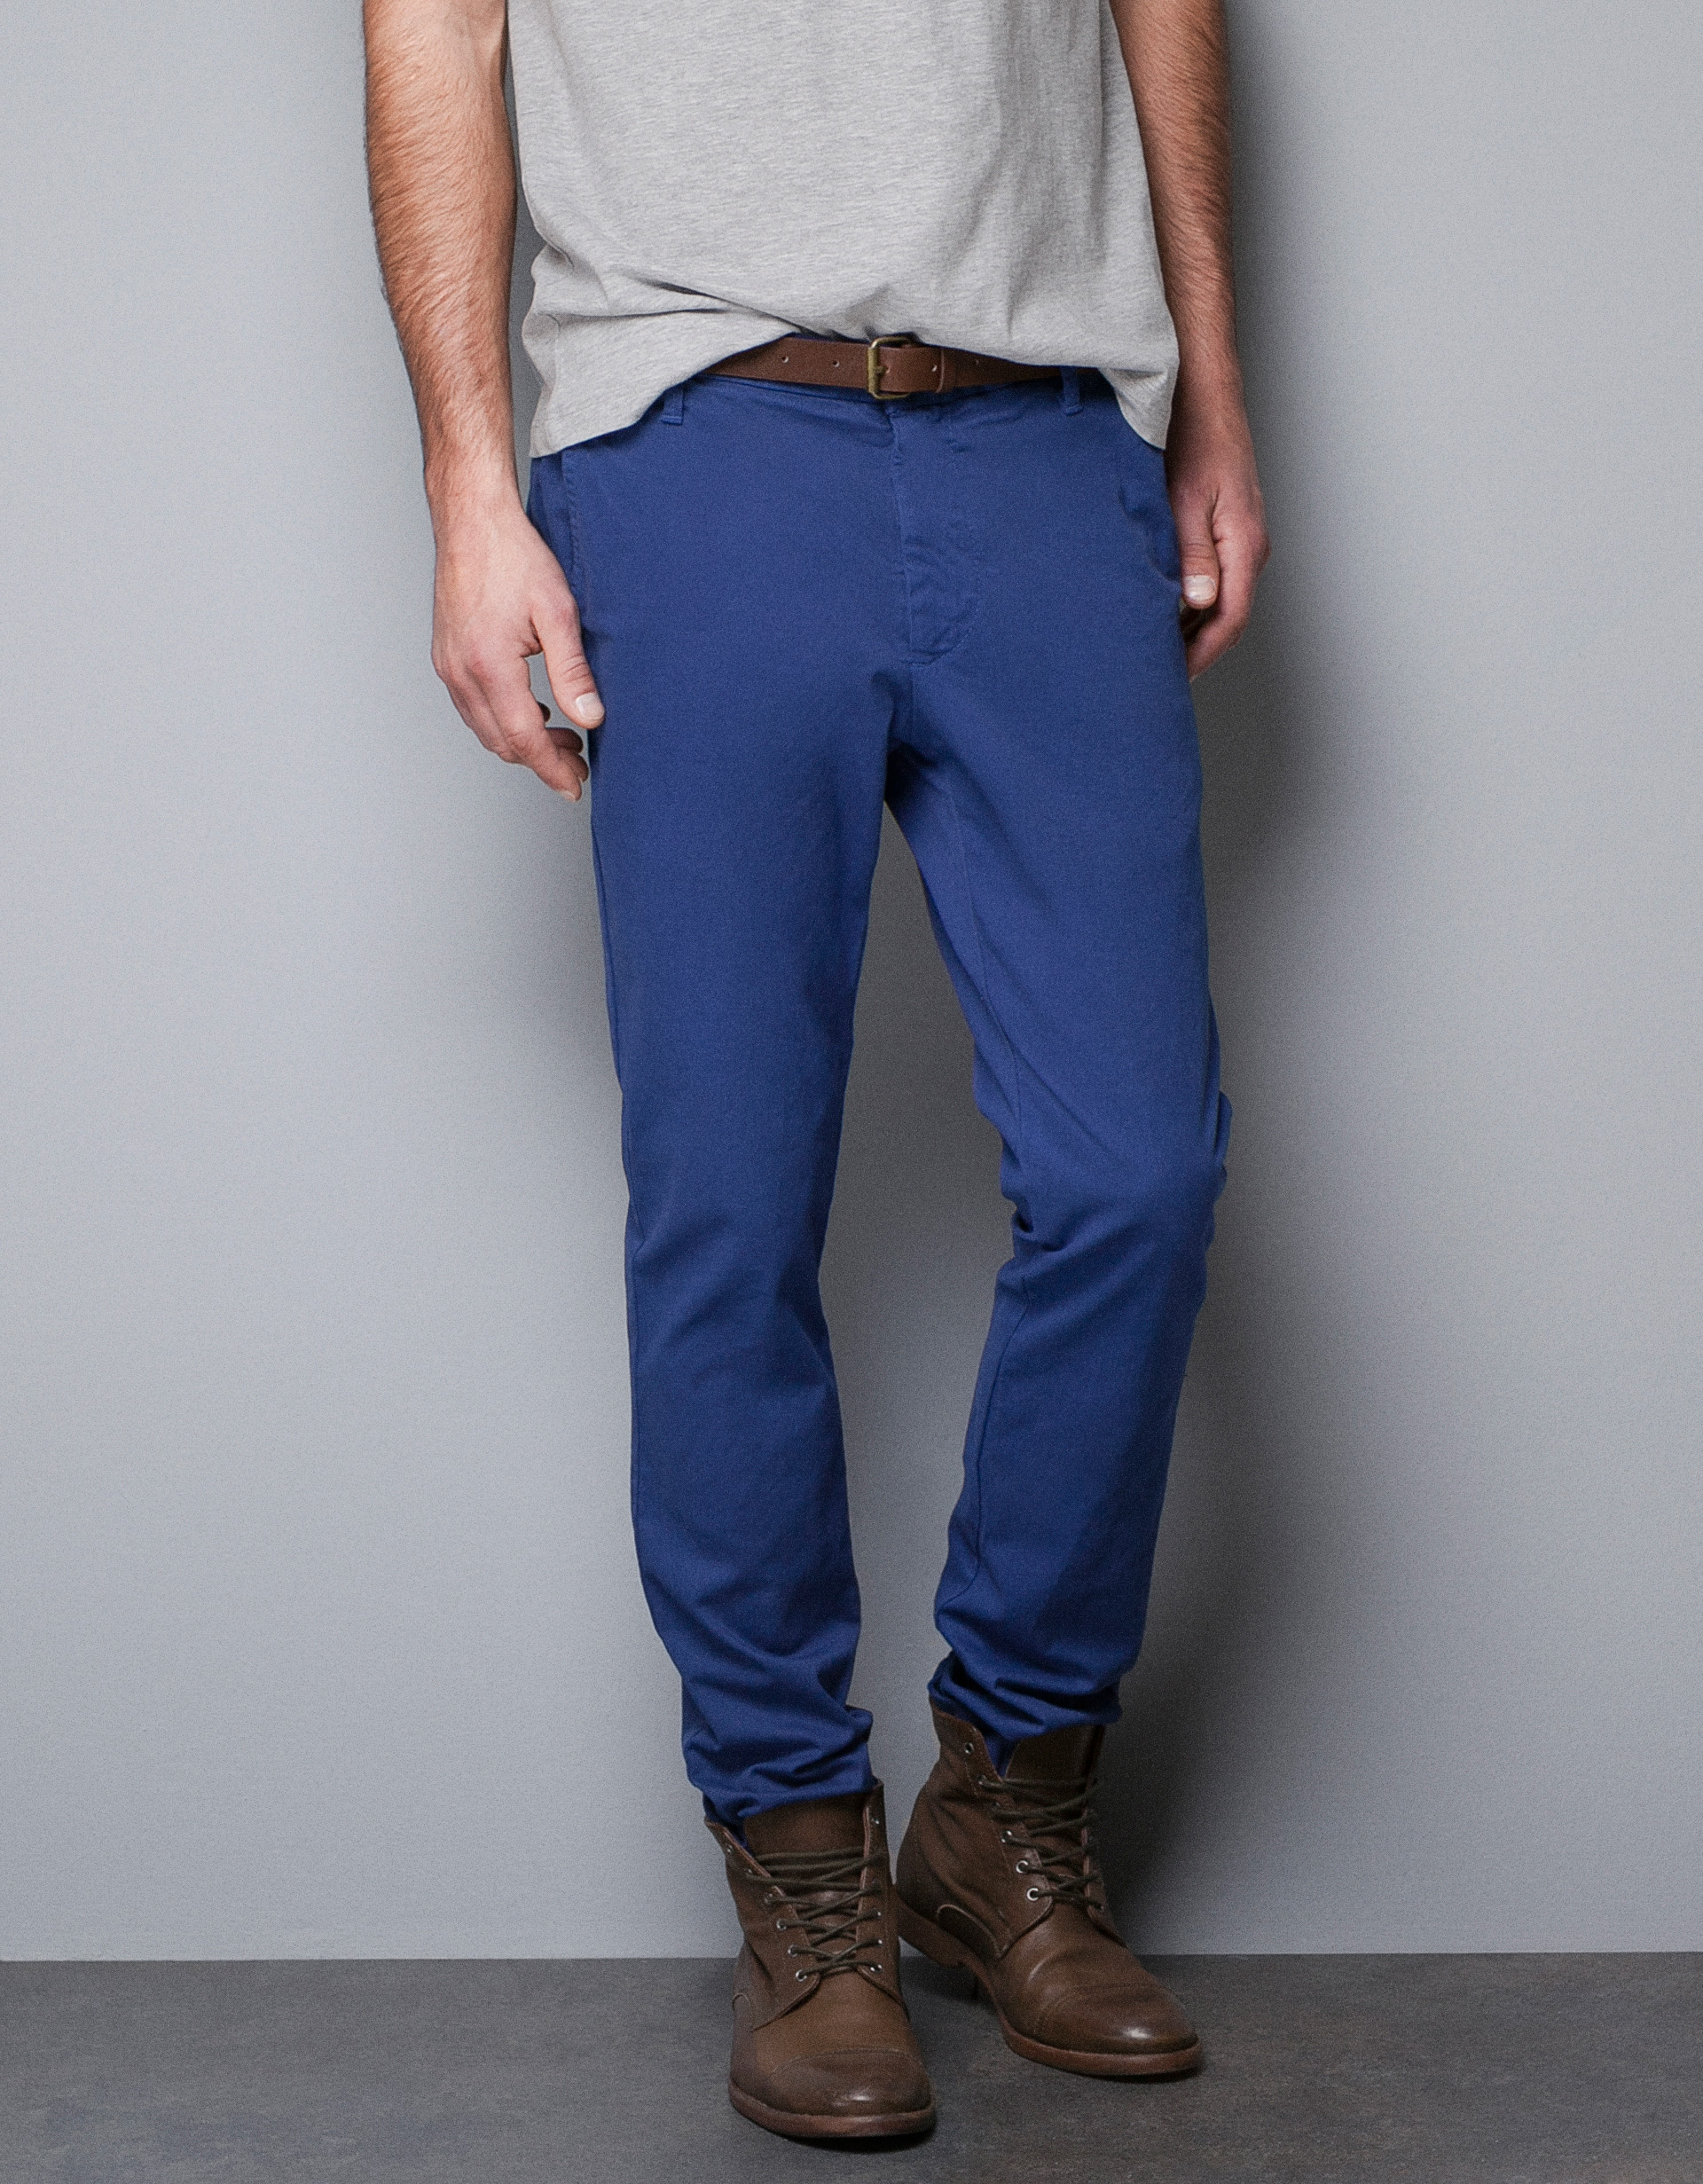 aad72be3f5 Premium Denim Jeans and Ready to Wear   J Brand®